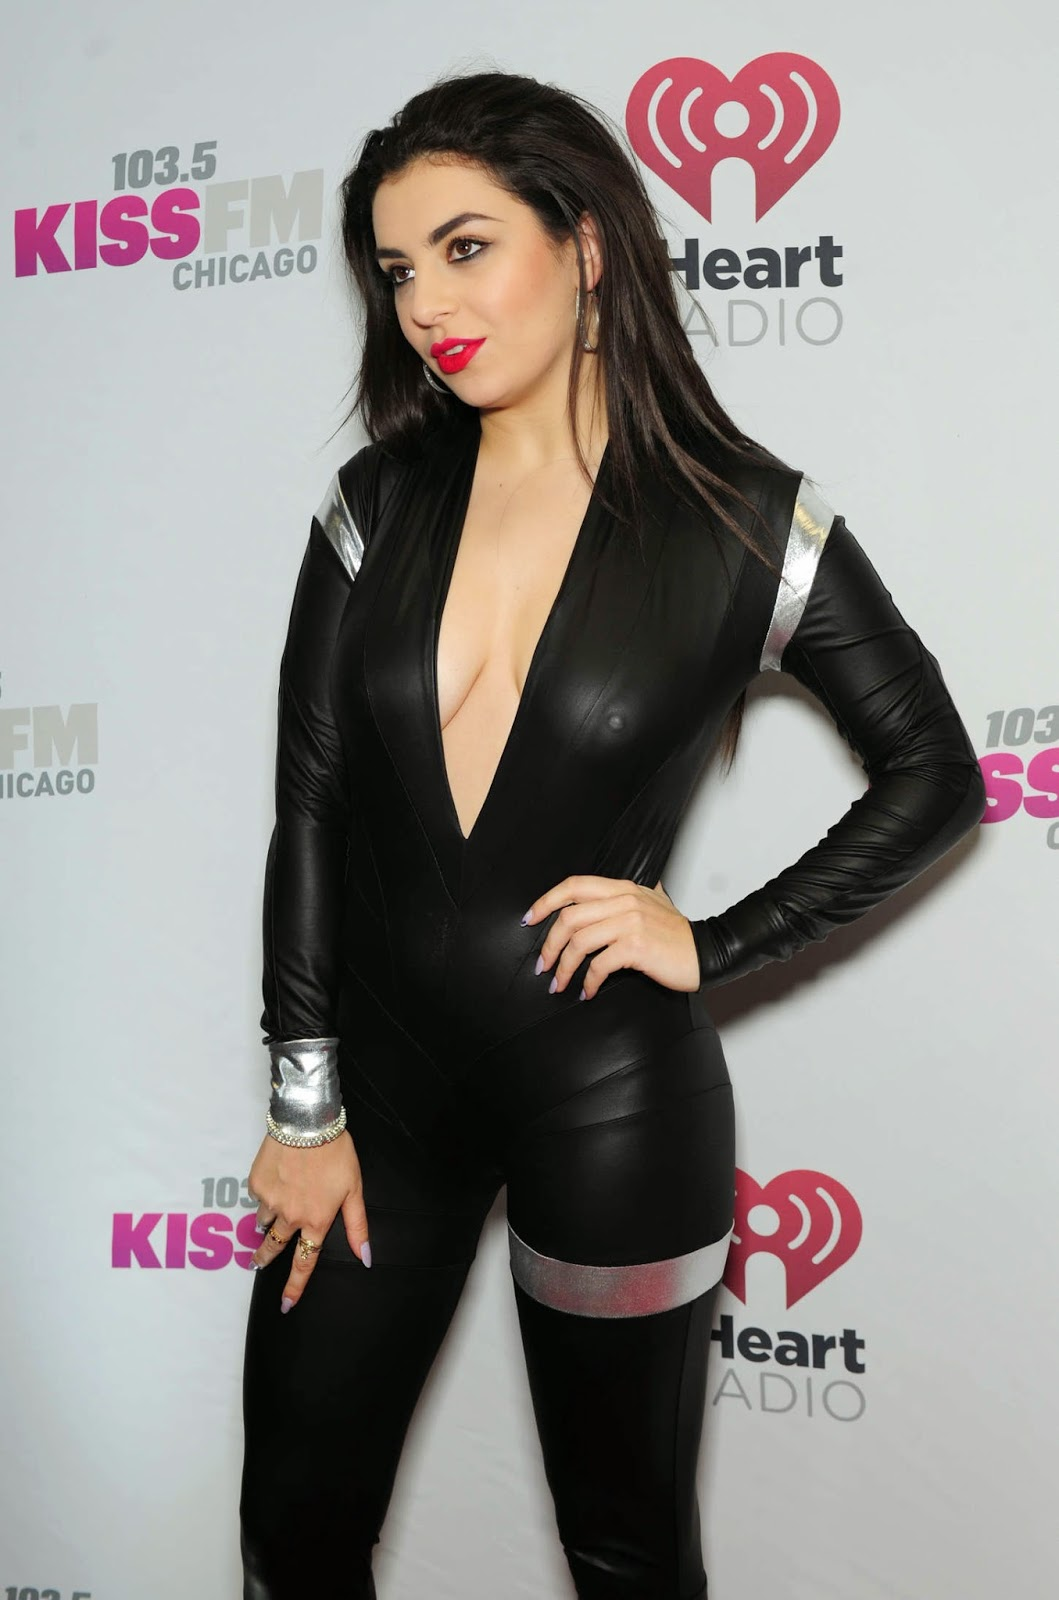 Charli XCX goes braless in a latex jumpsuit at the 103.5 KIIS FM Jingle Ball